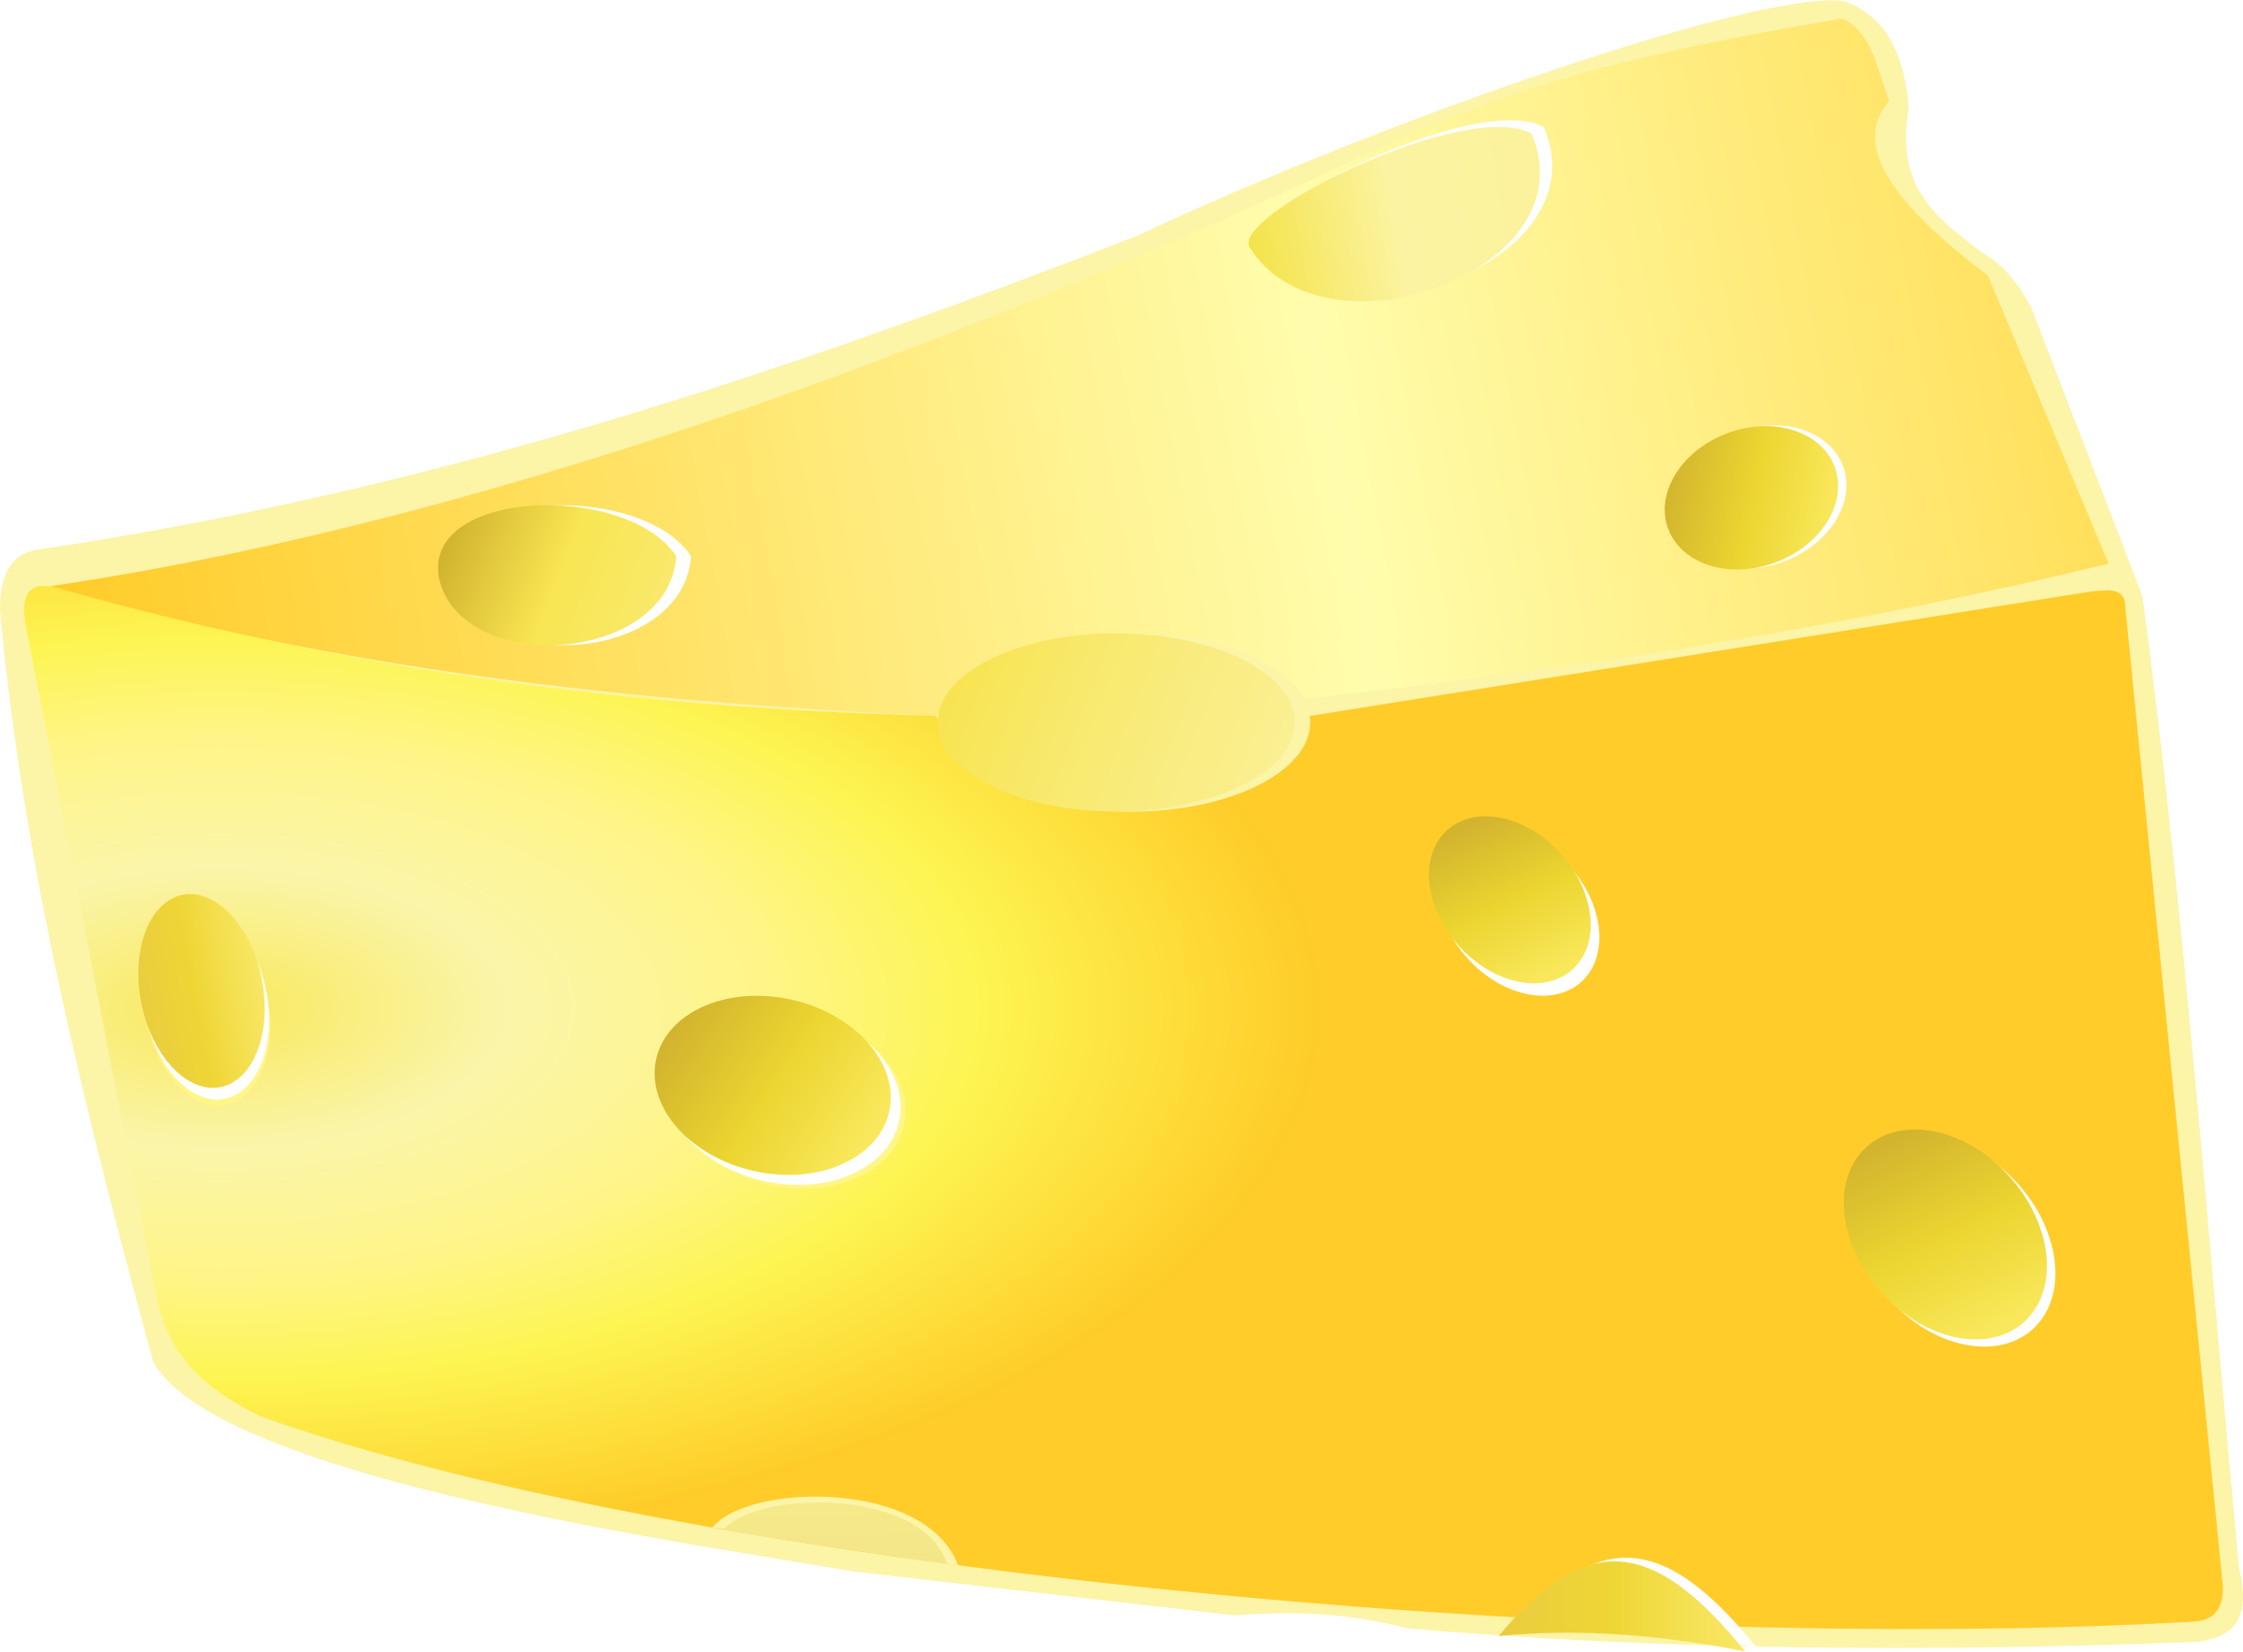 Swiss cheese clipart 2